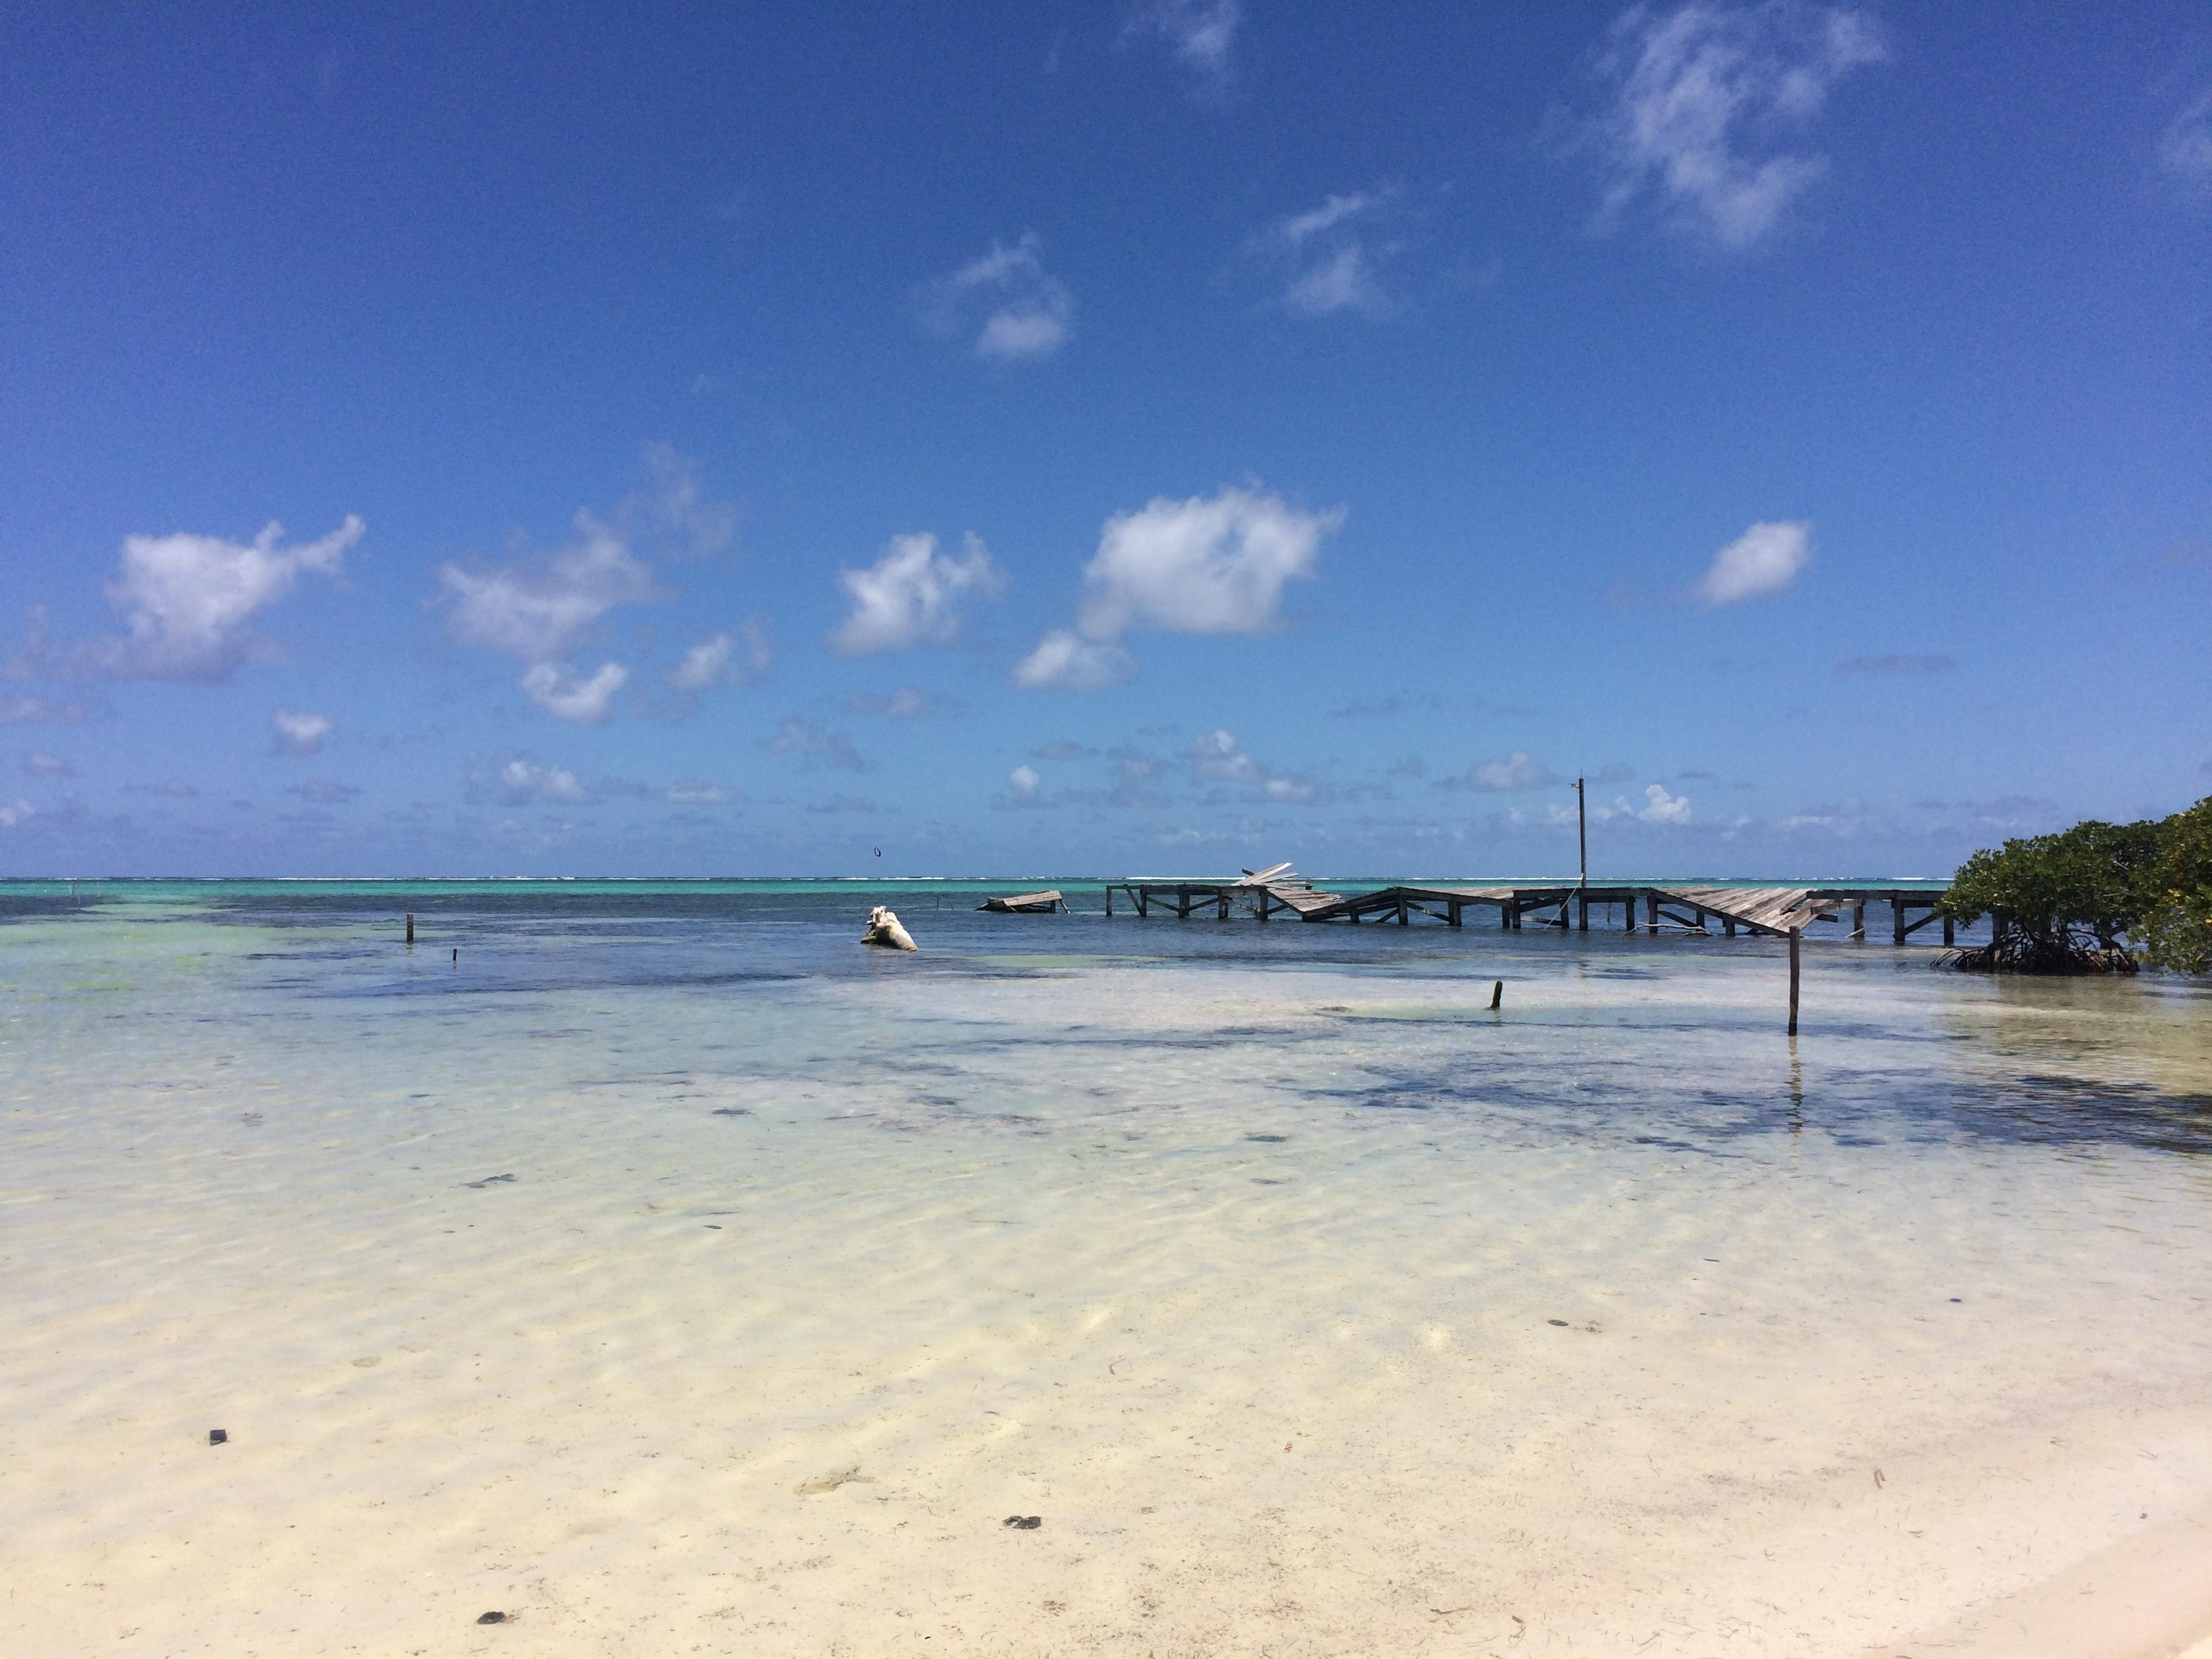 IMG 6271 - Belize Itinerary: 10 Days (On A Budget)